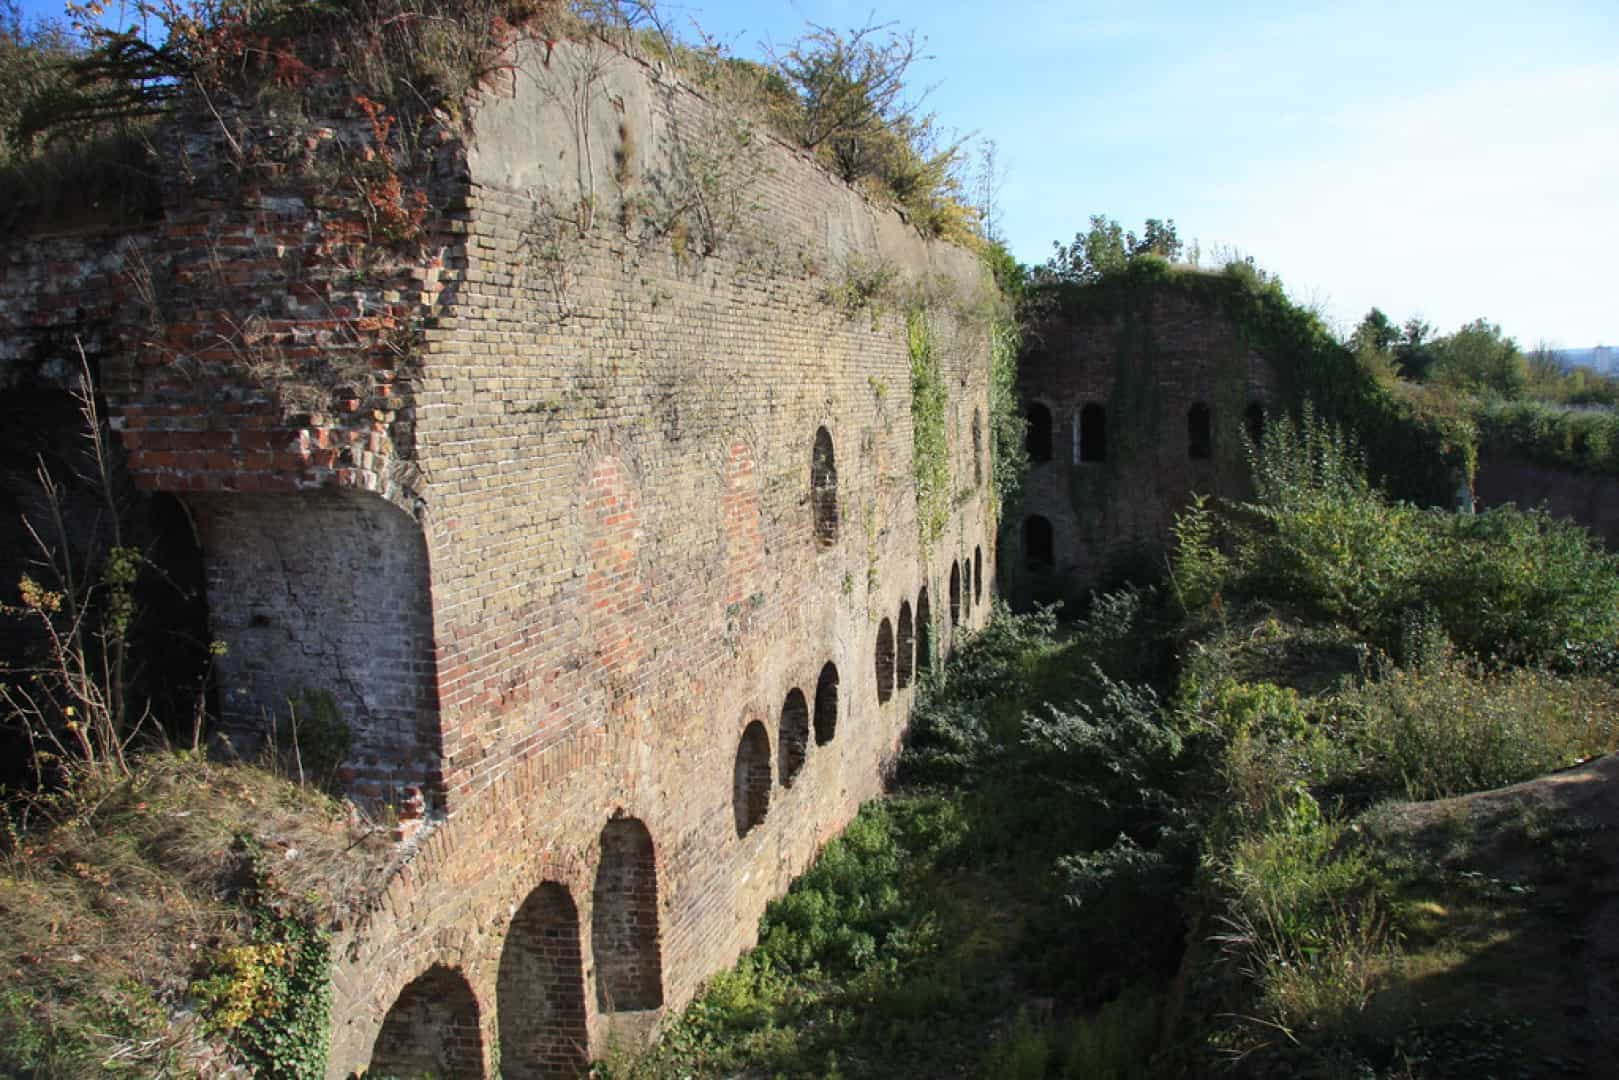 Fort Amherst in Chatham Kent was constructed for protection purposes